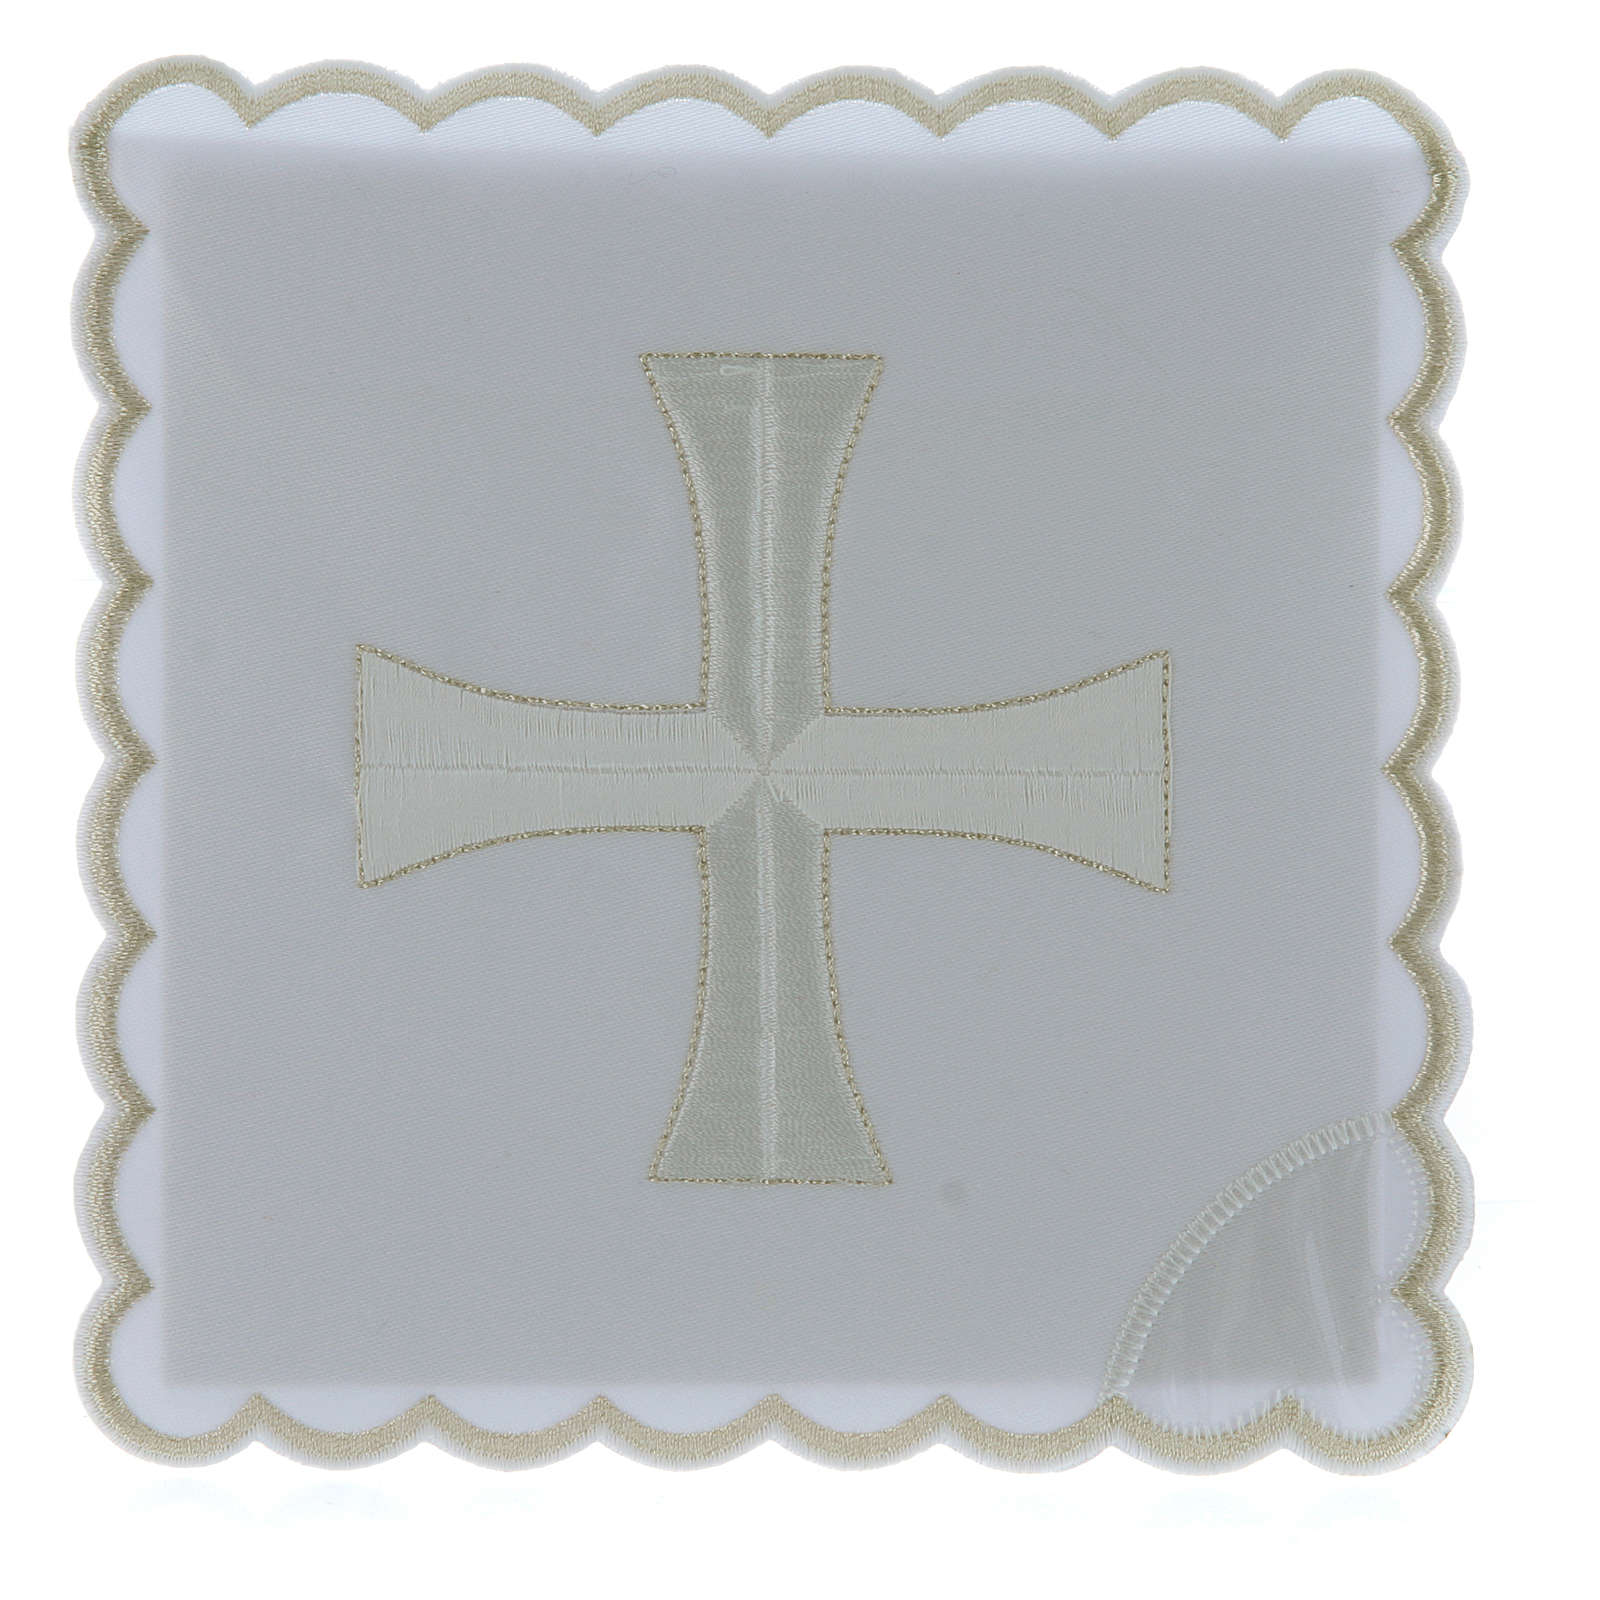 Altar linen white & silver cross embroided, cotton 4